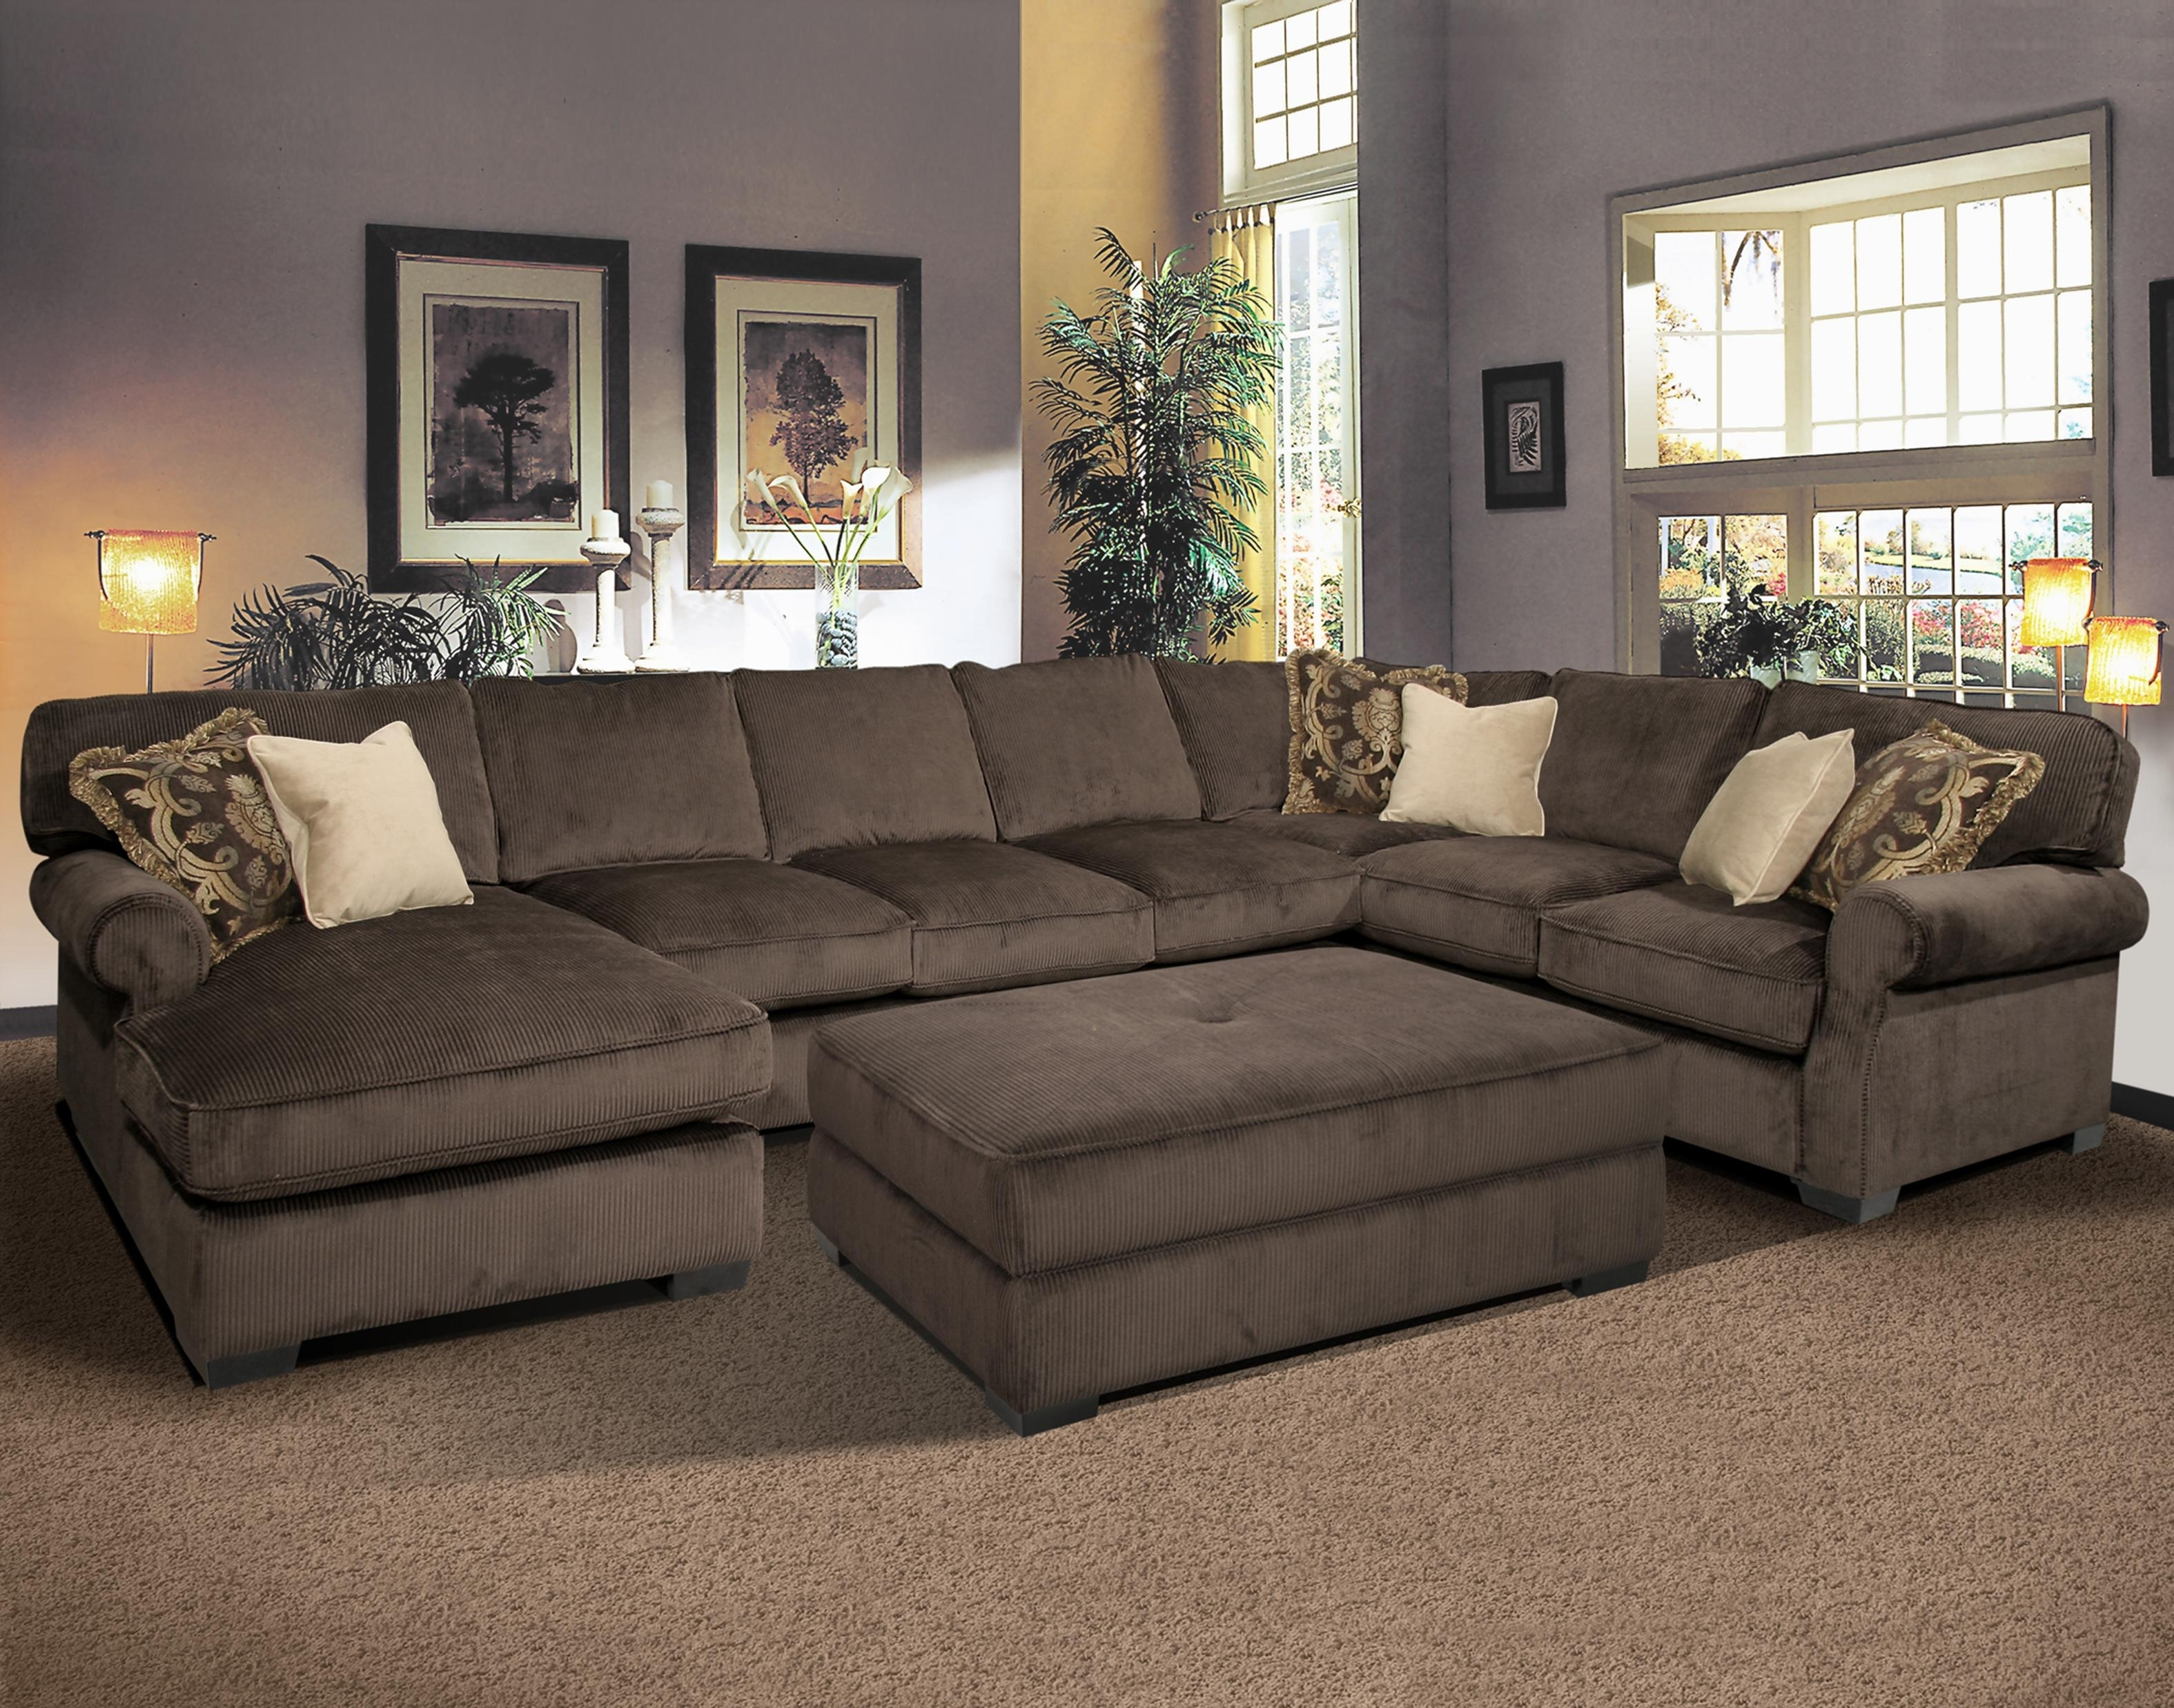 Awesome Large U Shaped Sectional Sofas 26 For Your Leather Sectional pertaining to U Shaped Leather Sectional Sofas (Image 2 of 10)